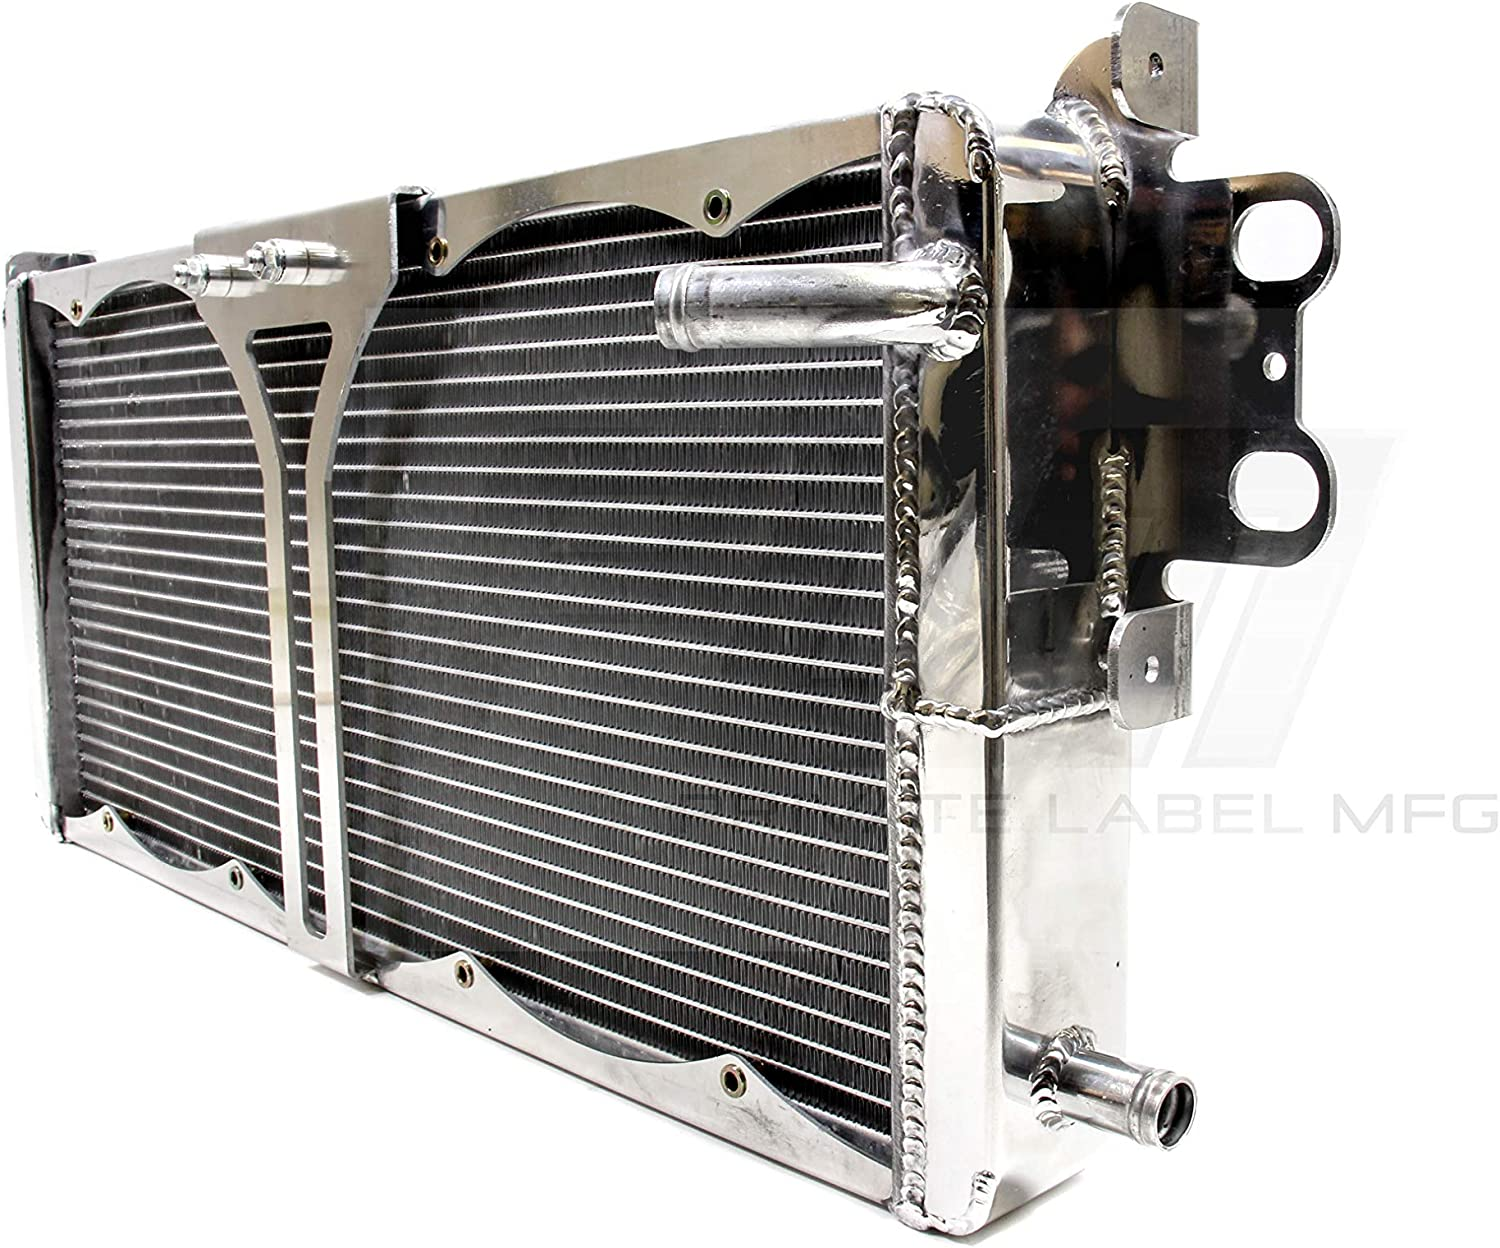 2007-2012 Mustang Shelby GT500 Supercharged Fits Silver PLM Power Driven Double Pass Heat Exchanger